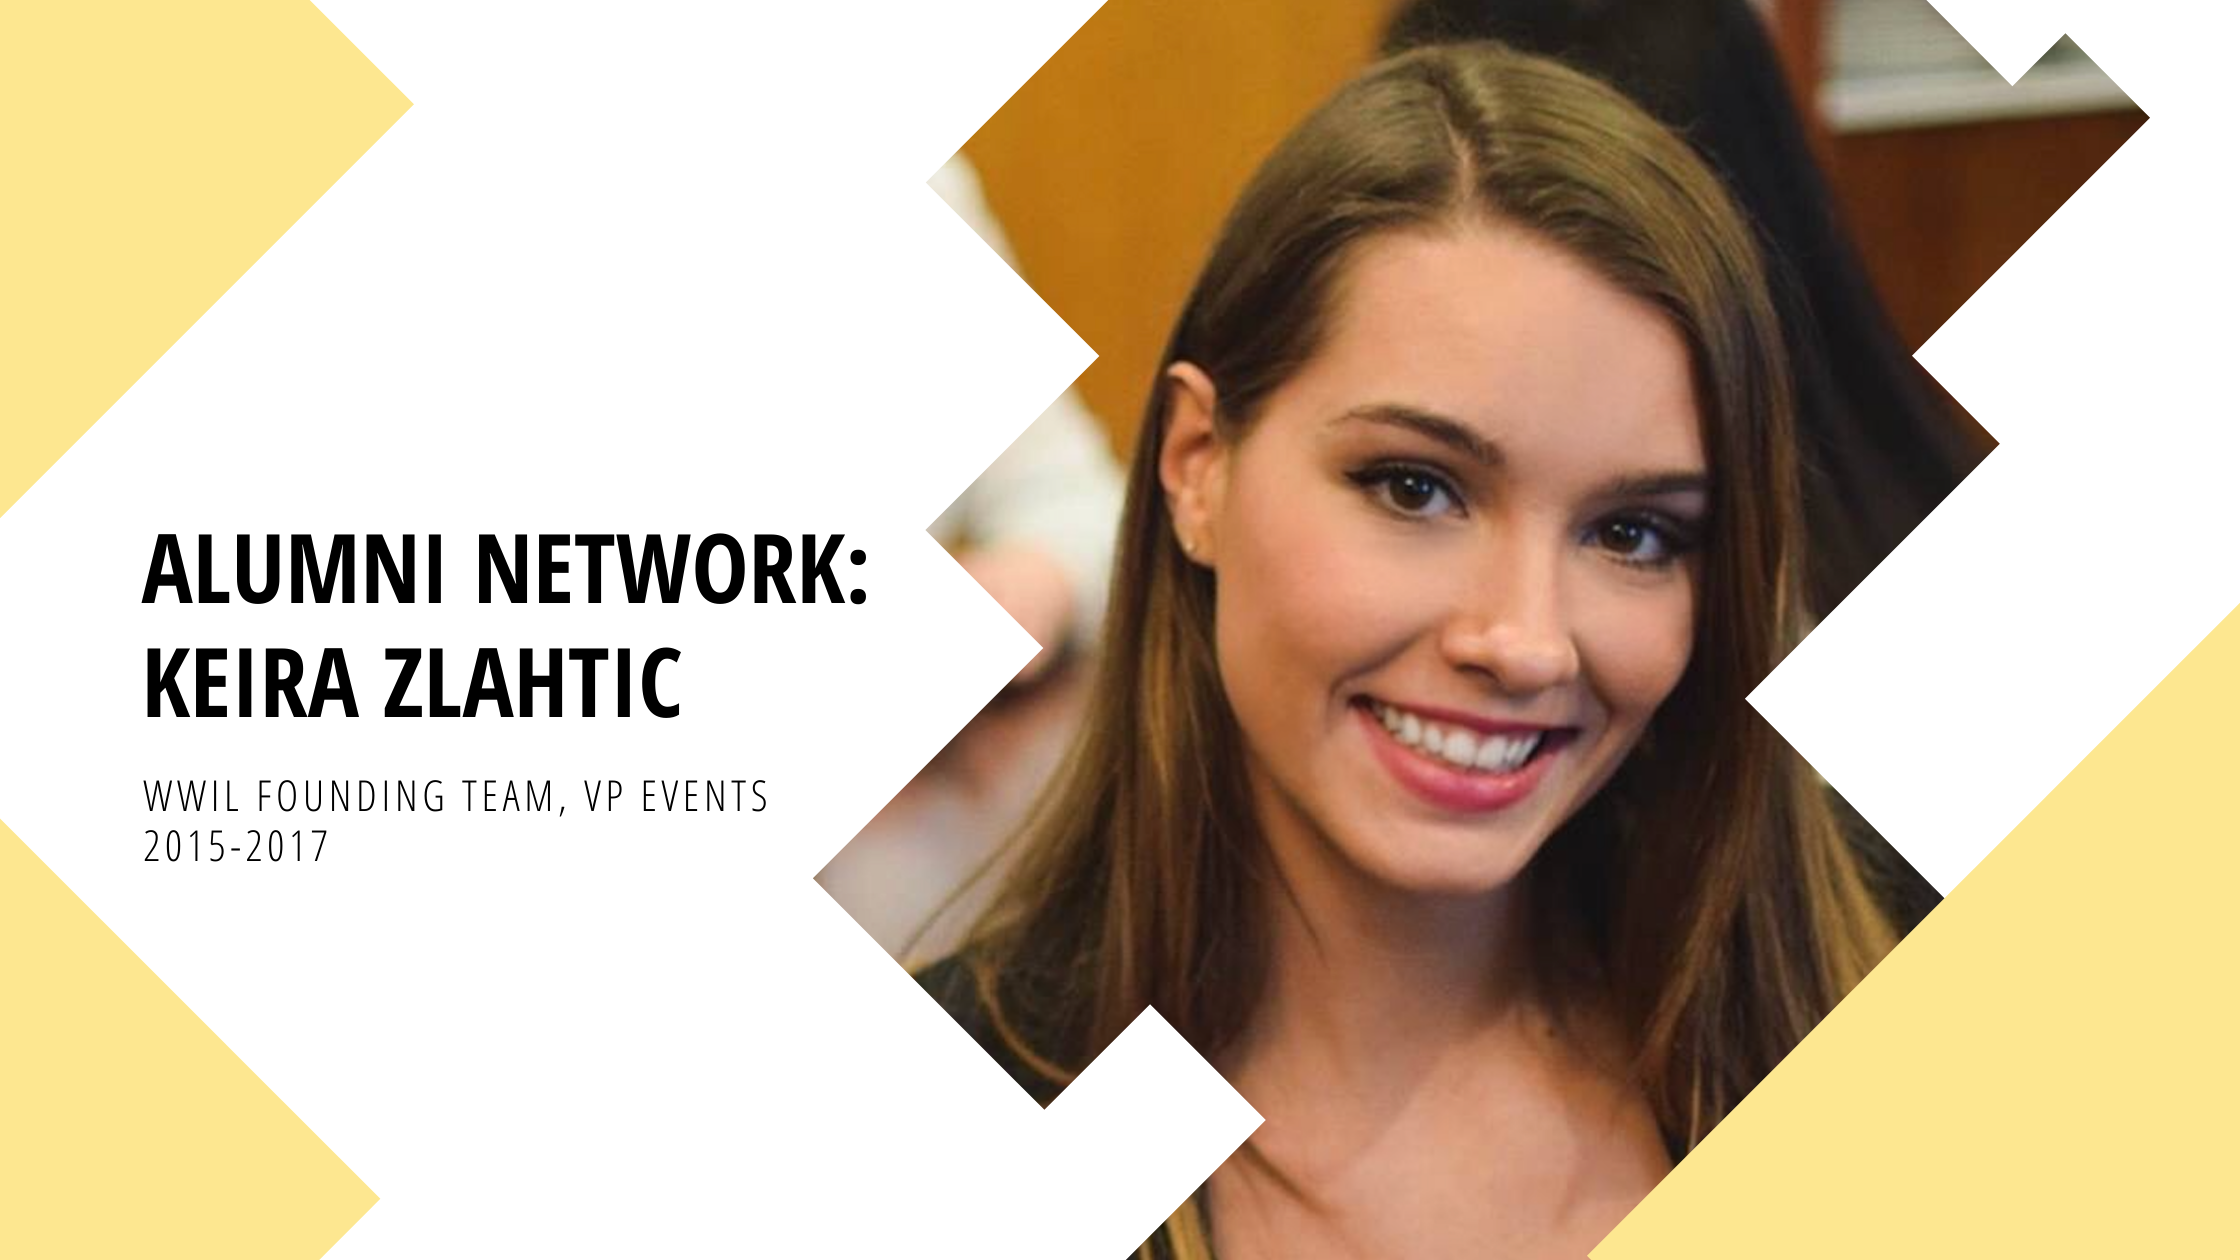 Alumni Network: Founding Team Keira Zlahtic